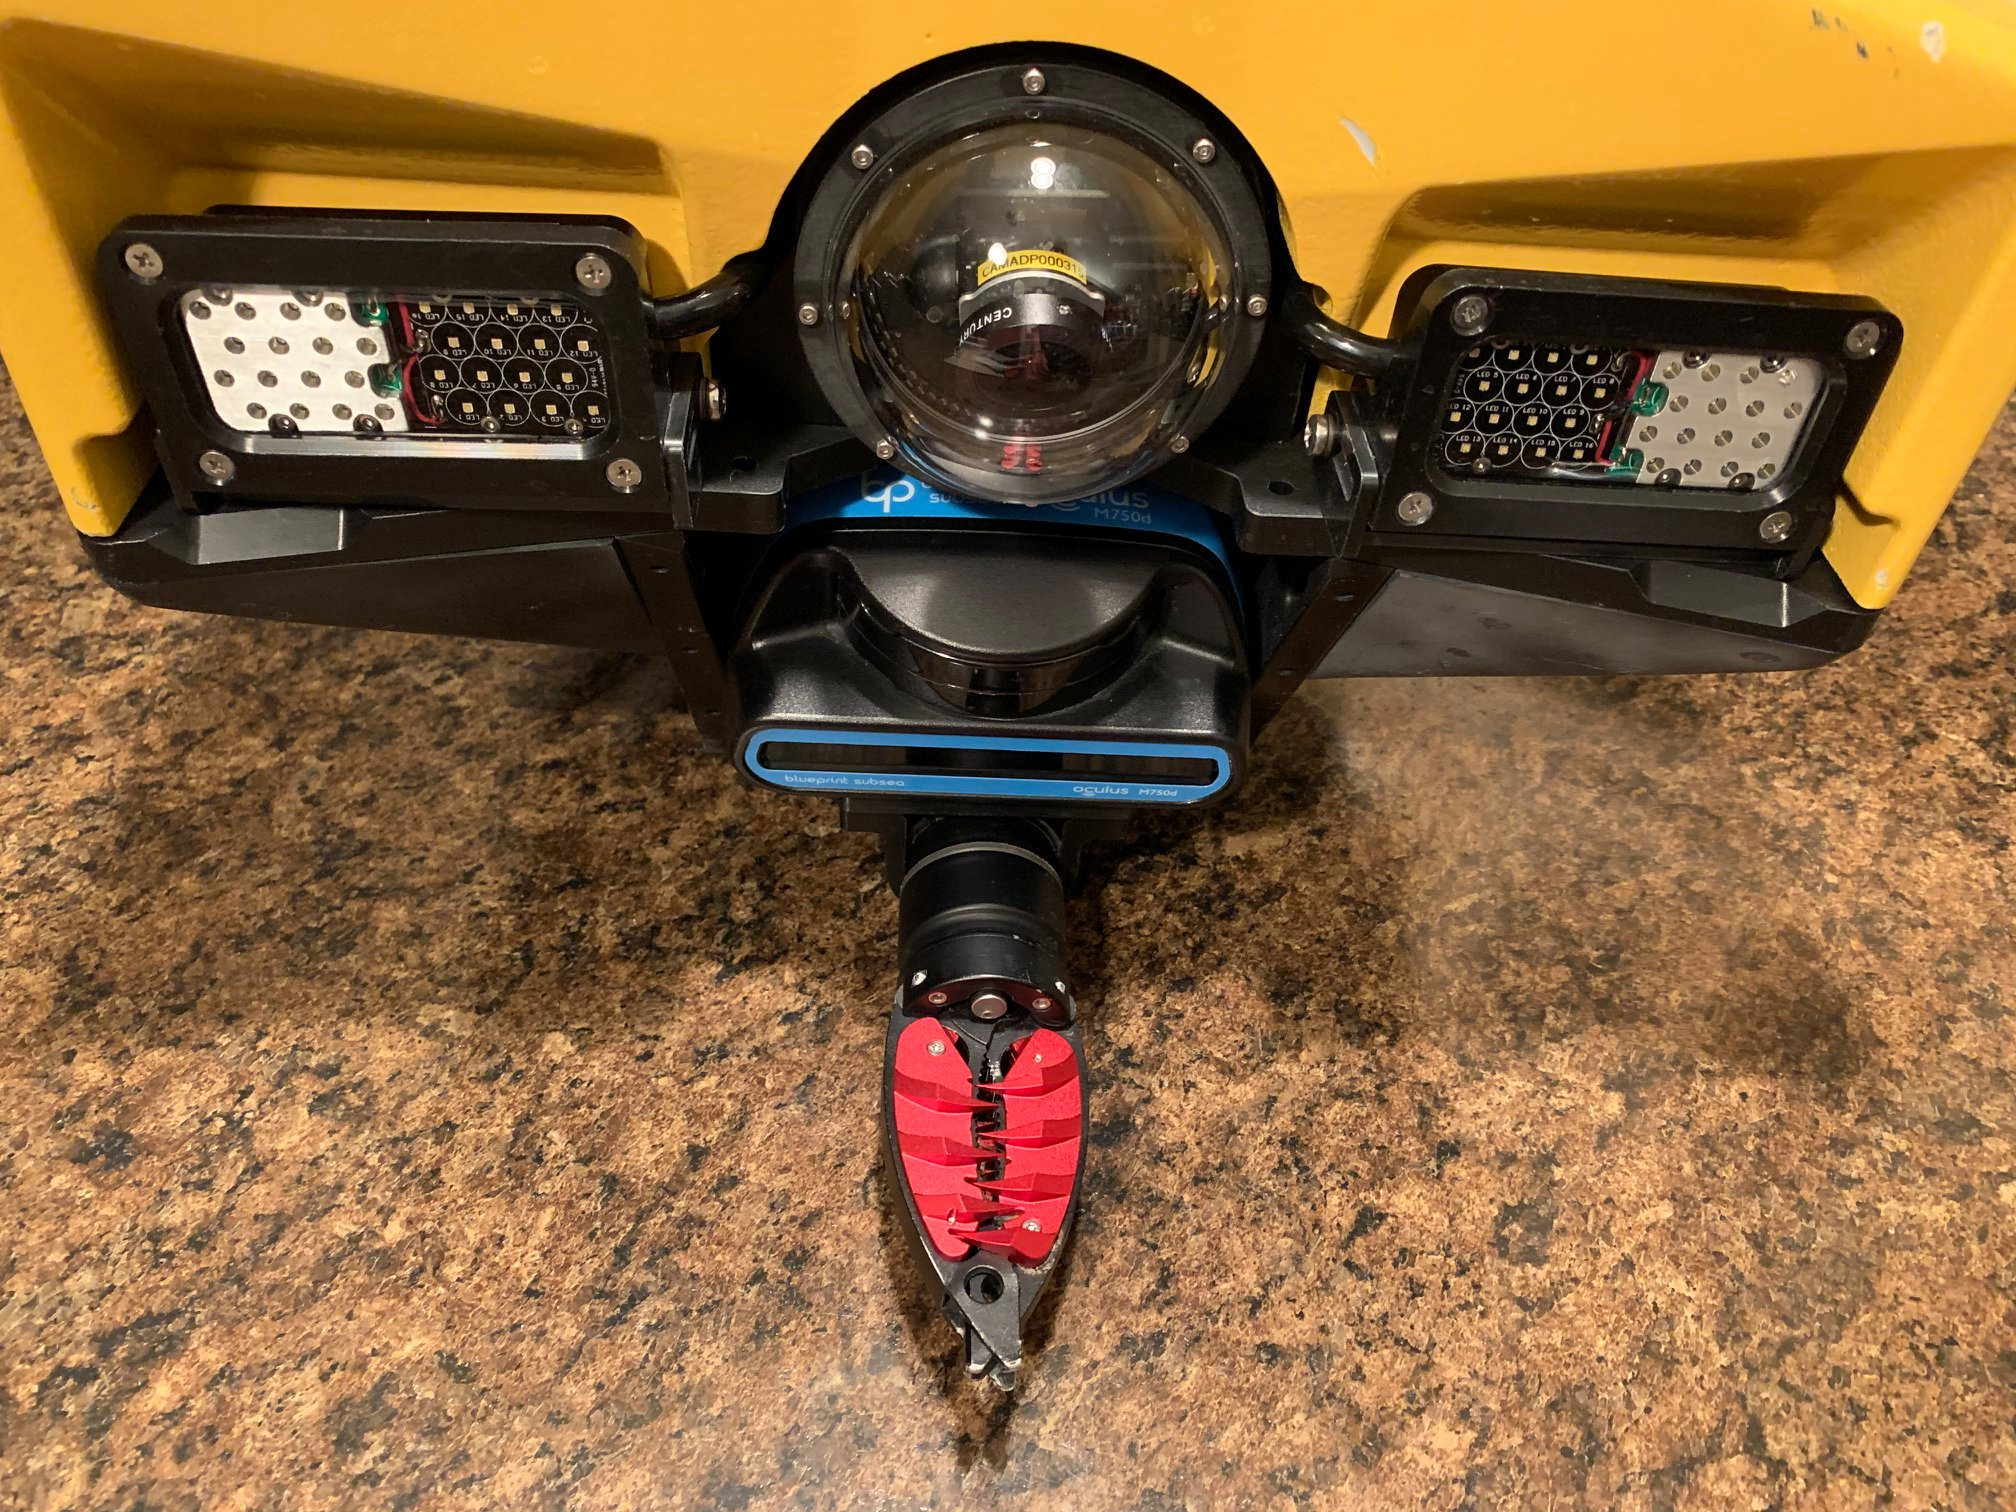 Special Recovery tool integrated on Video Ray Pro5 ROV